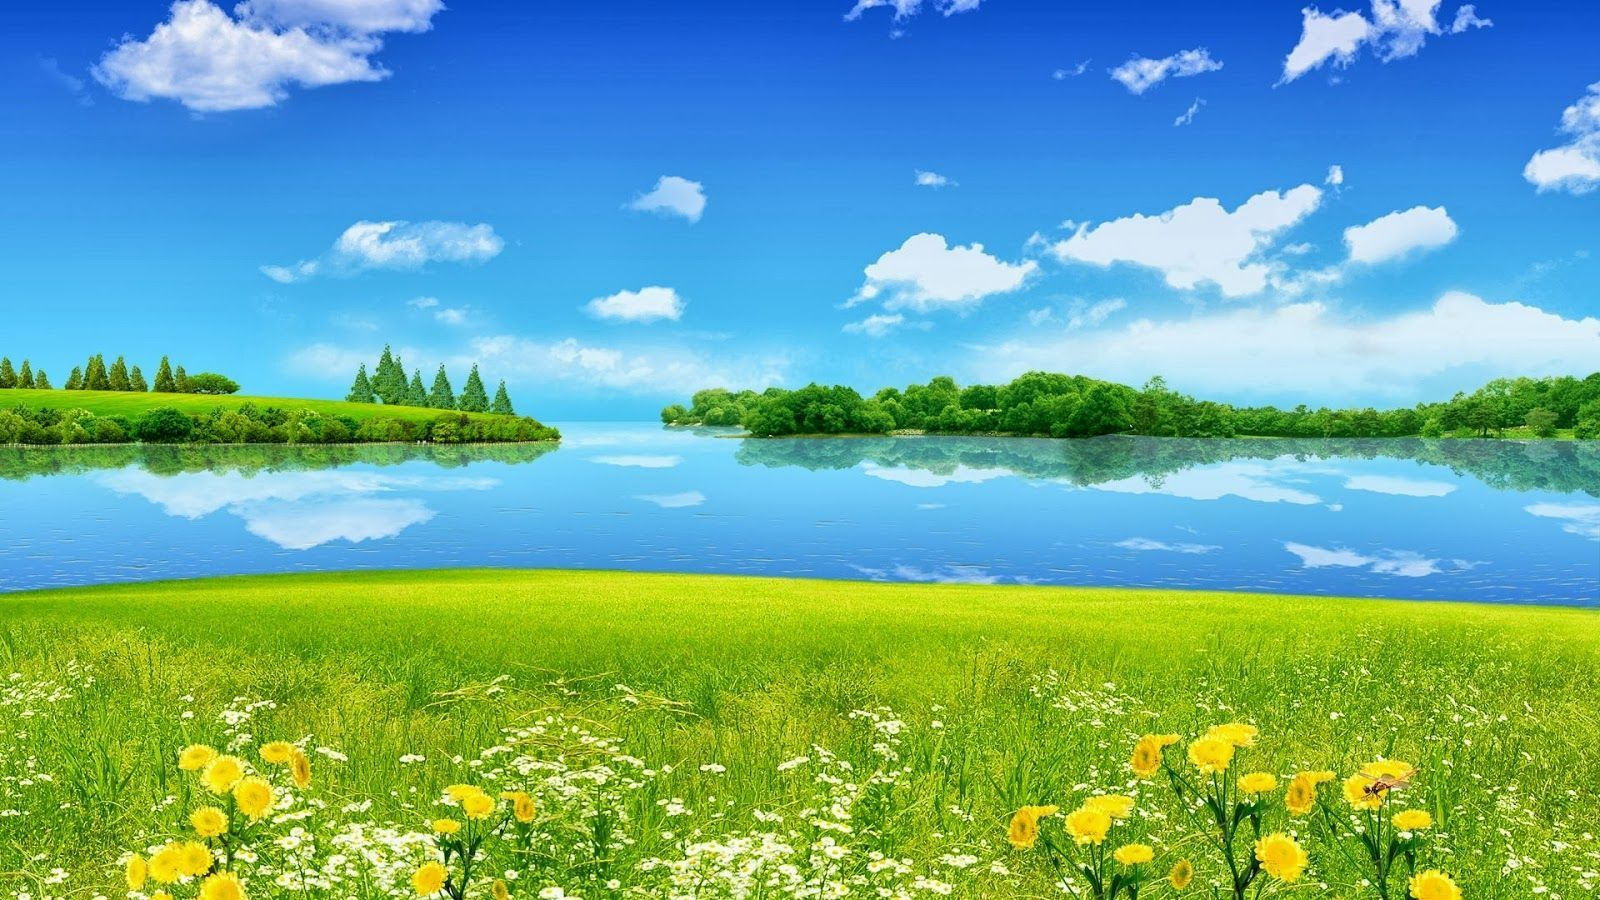 Pin By Maureen L On Background Nature Desktop Nature Wallpaper Beautiful Nature Wallpaper